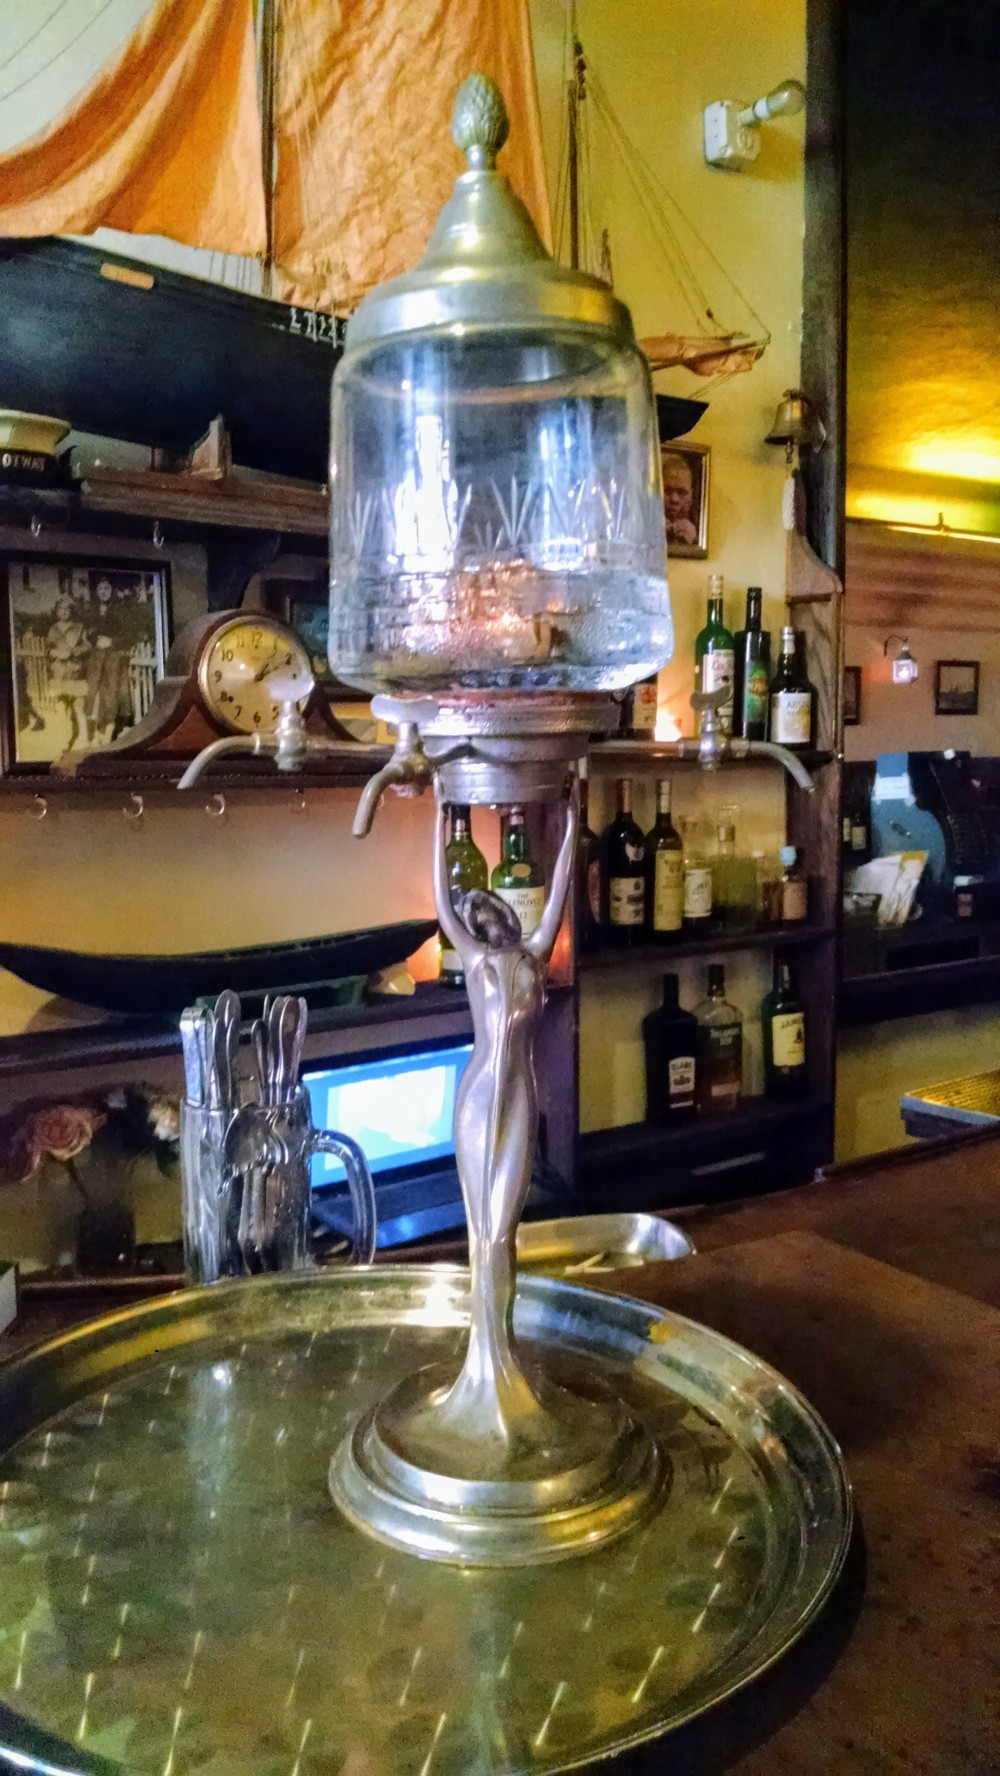 This device is used to prepare absinthe in William Barnacle Tavern